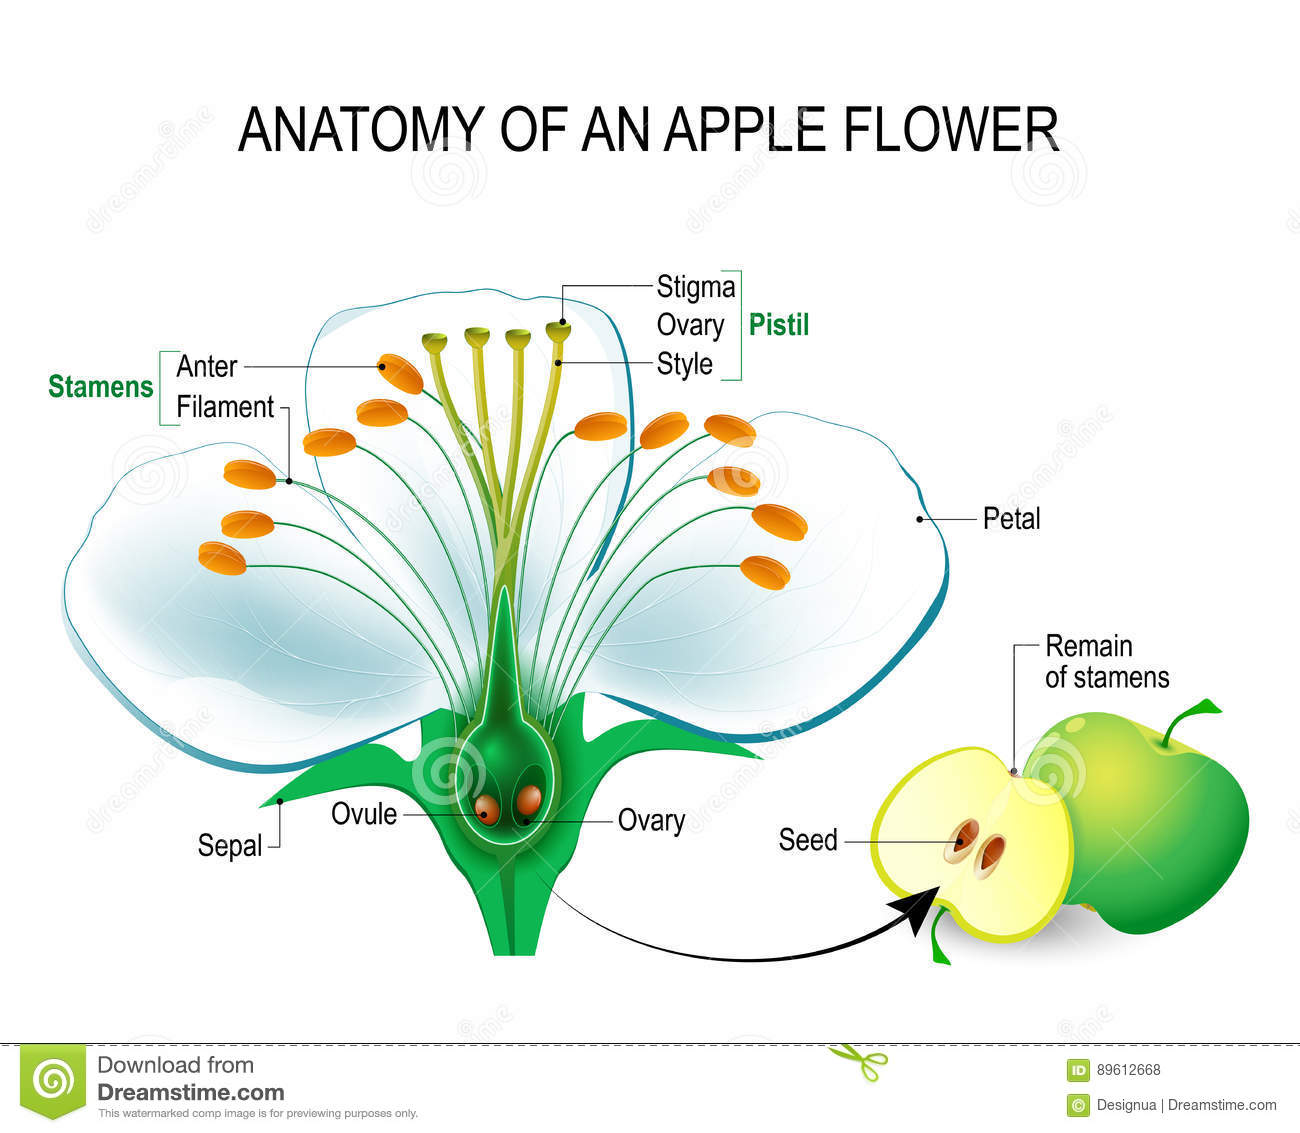 Anatomy of an apple flower stock vector. Illustration of educational ...